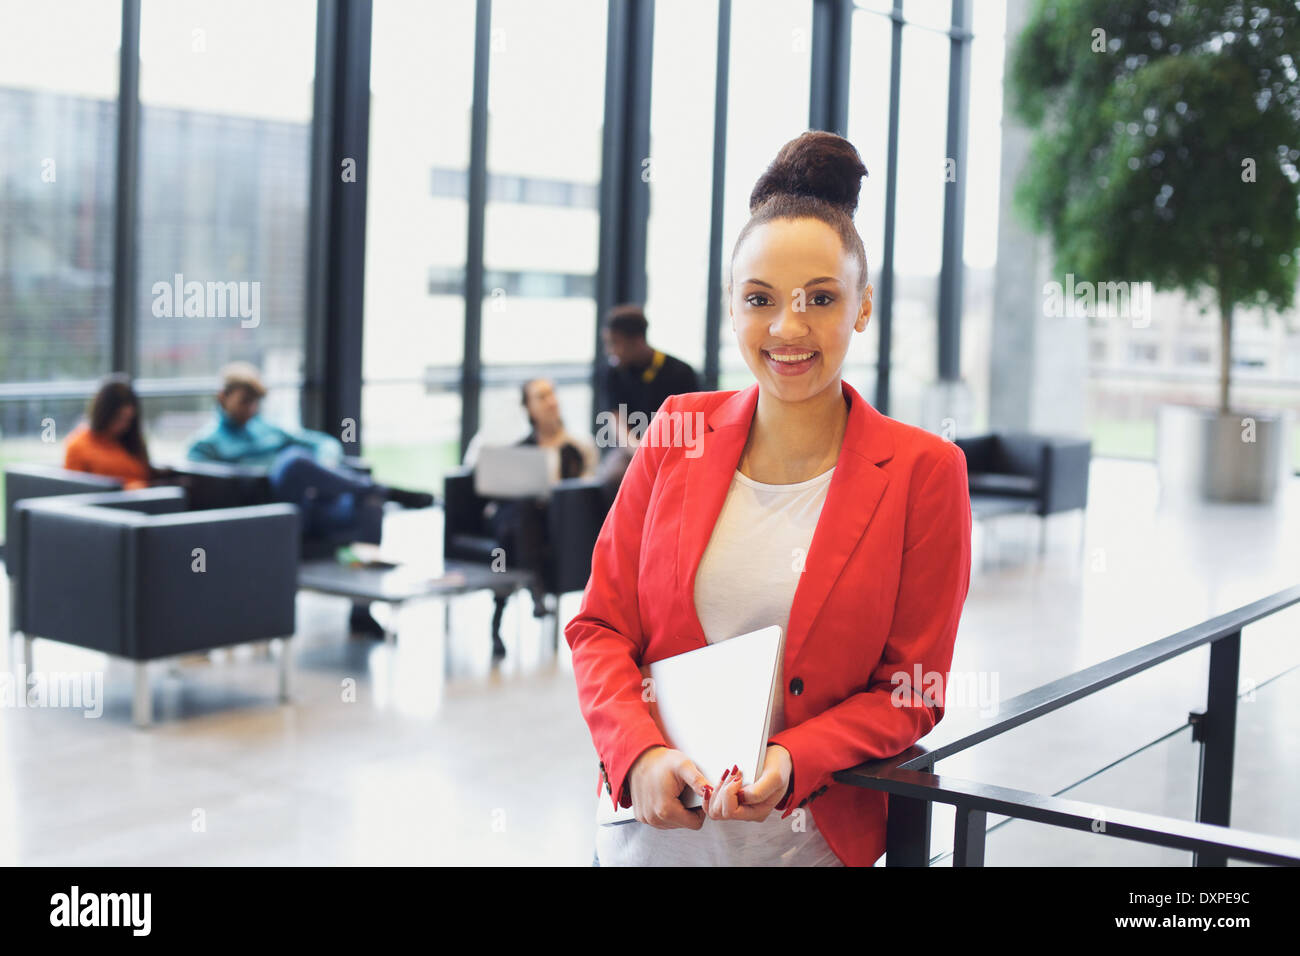 Pretty young woman holding a laptop standing by a railing looking at camera smiling. Young African-American businesswoman. - Stock Image